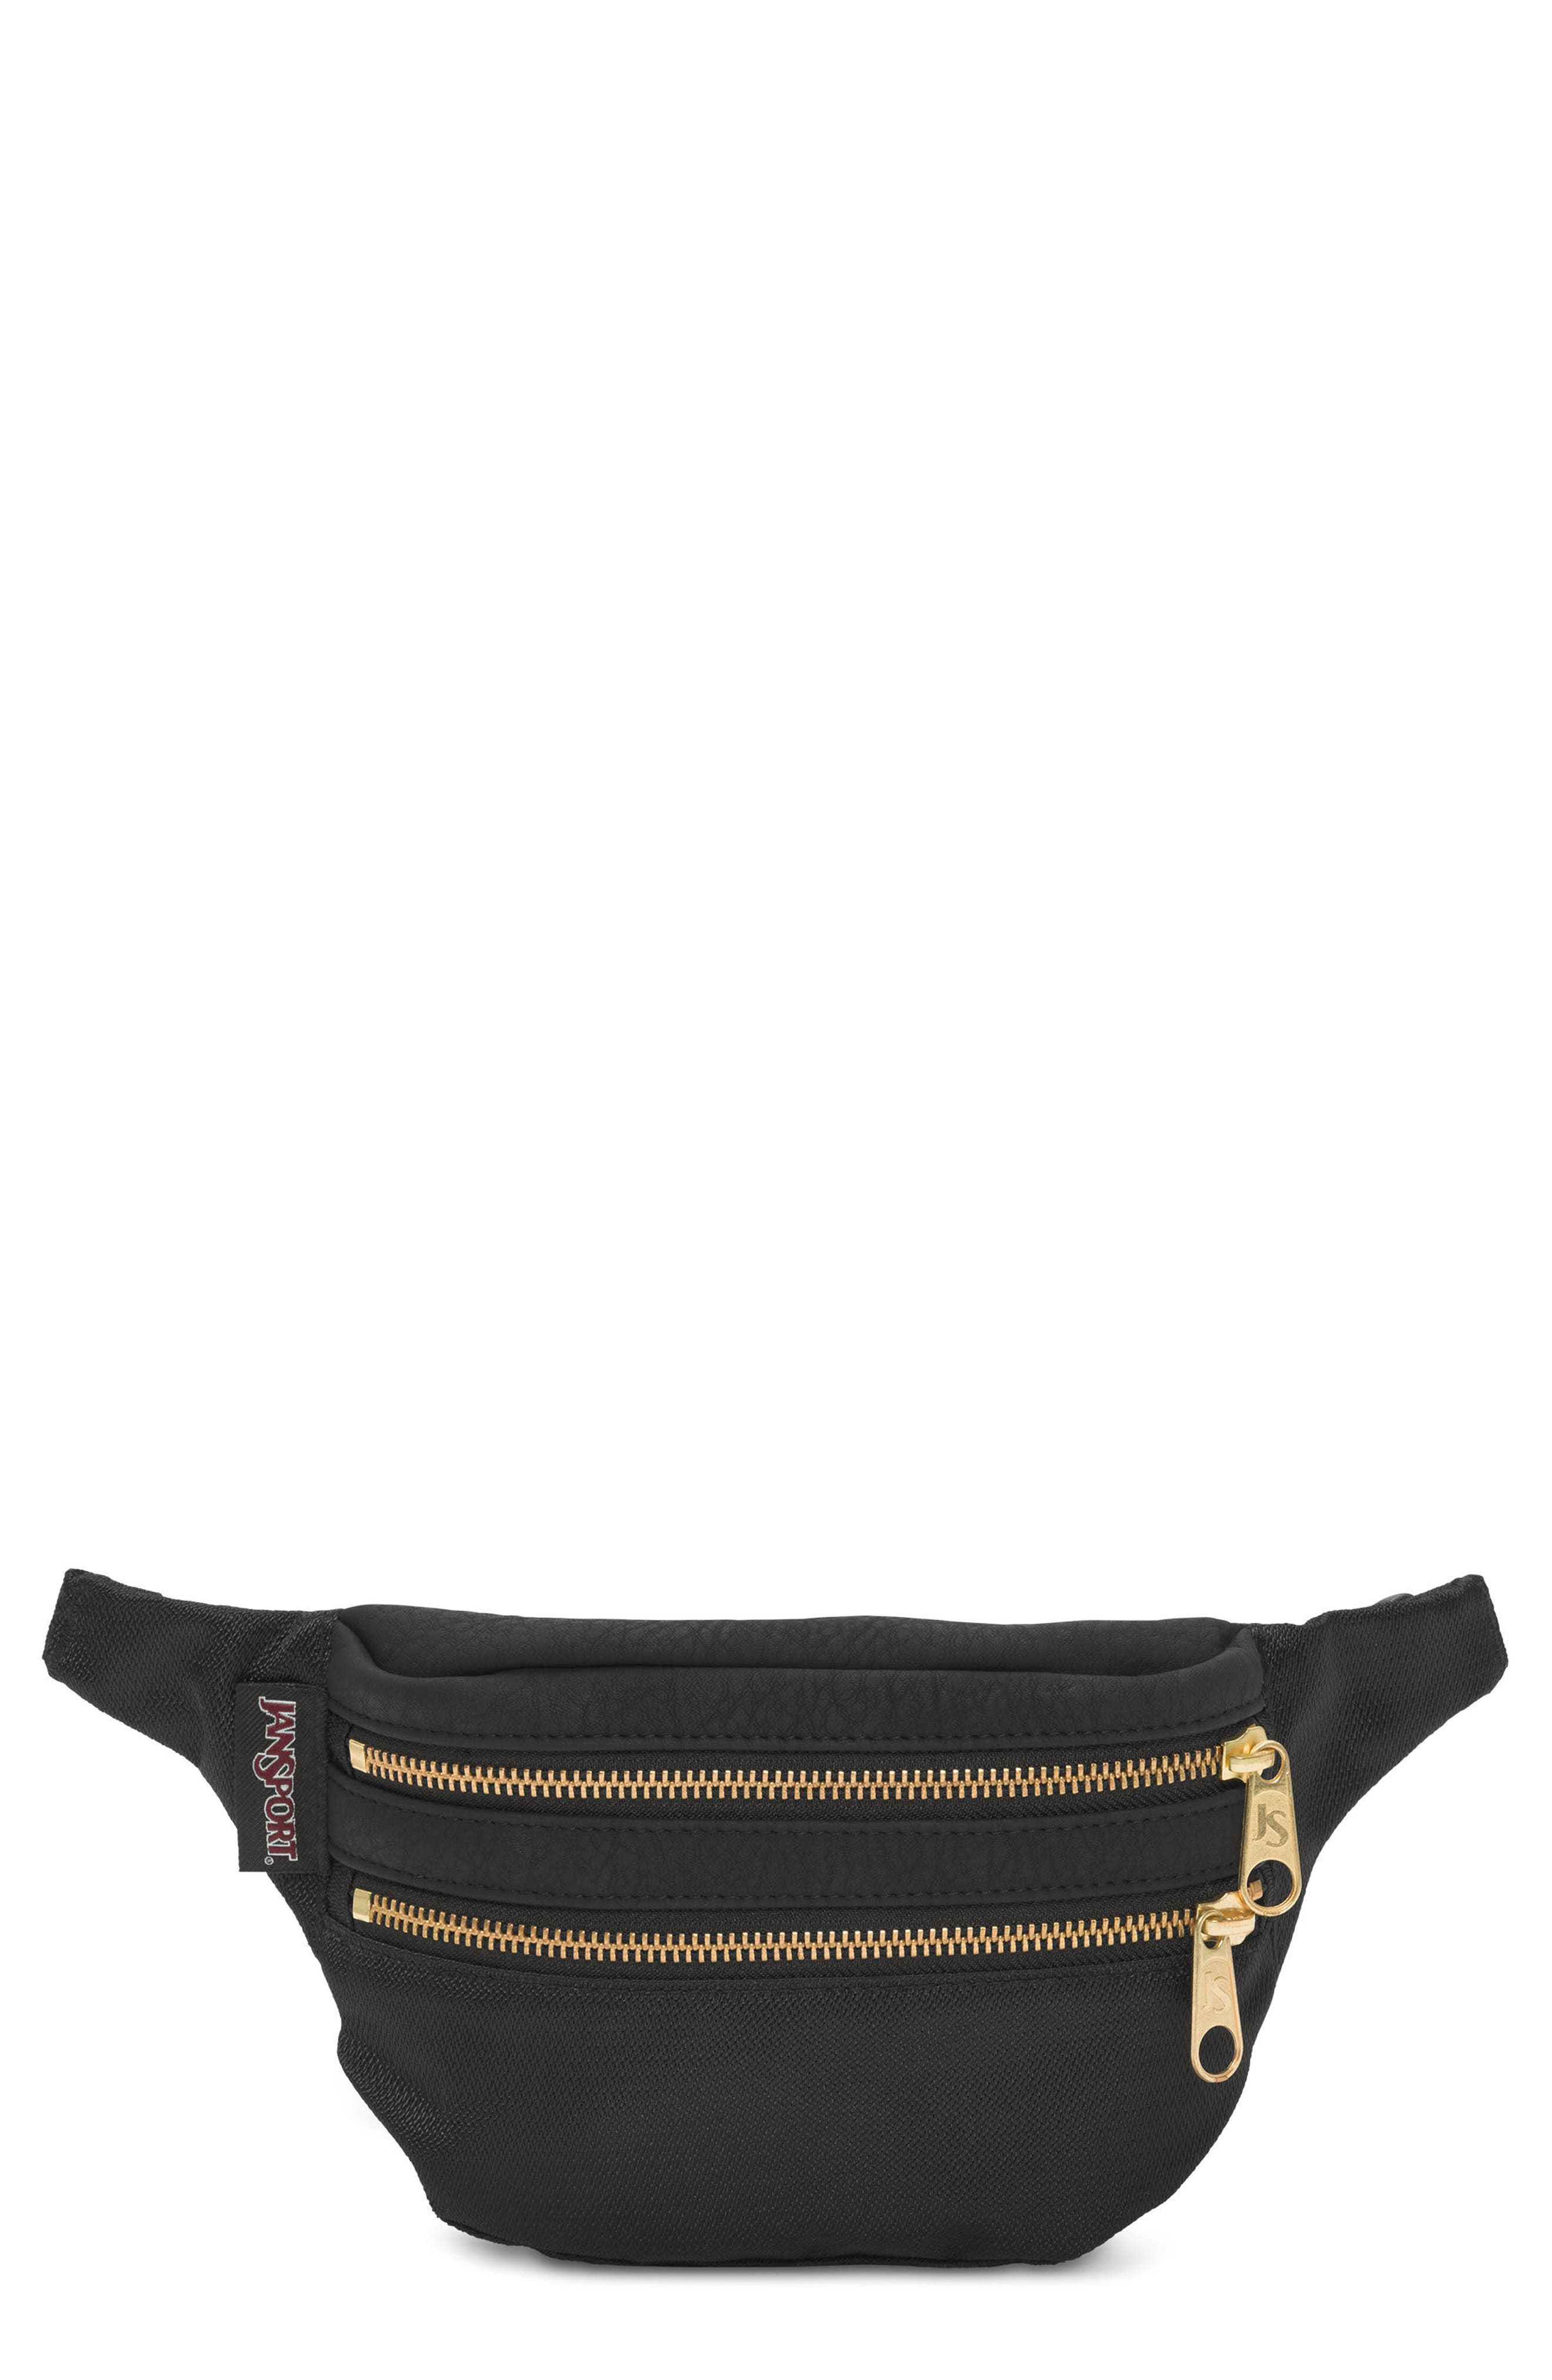 Hippyland Fanny Pack,                         Main,                         color, 001